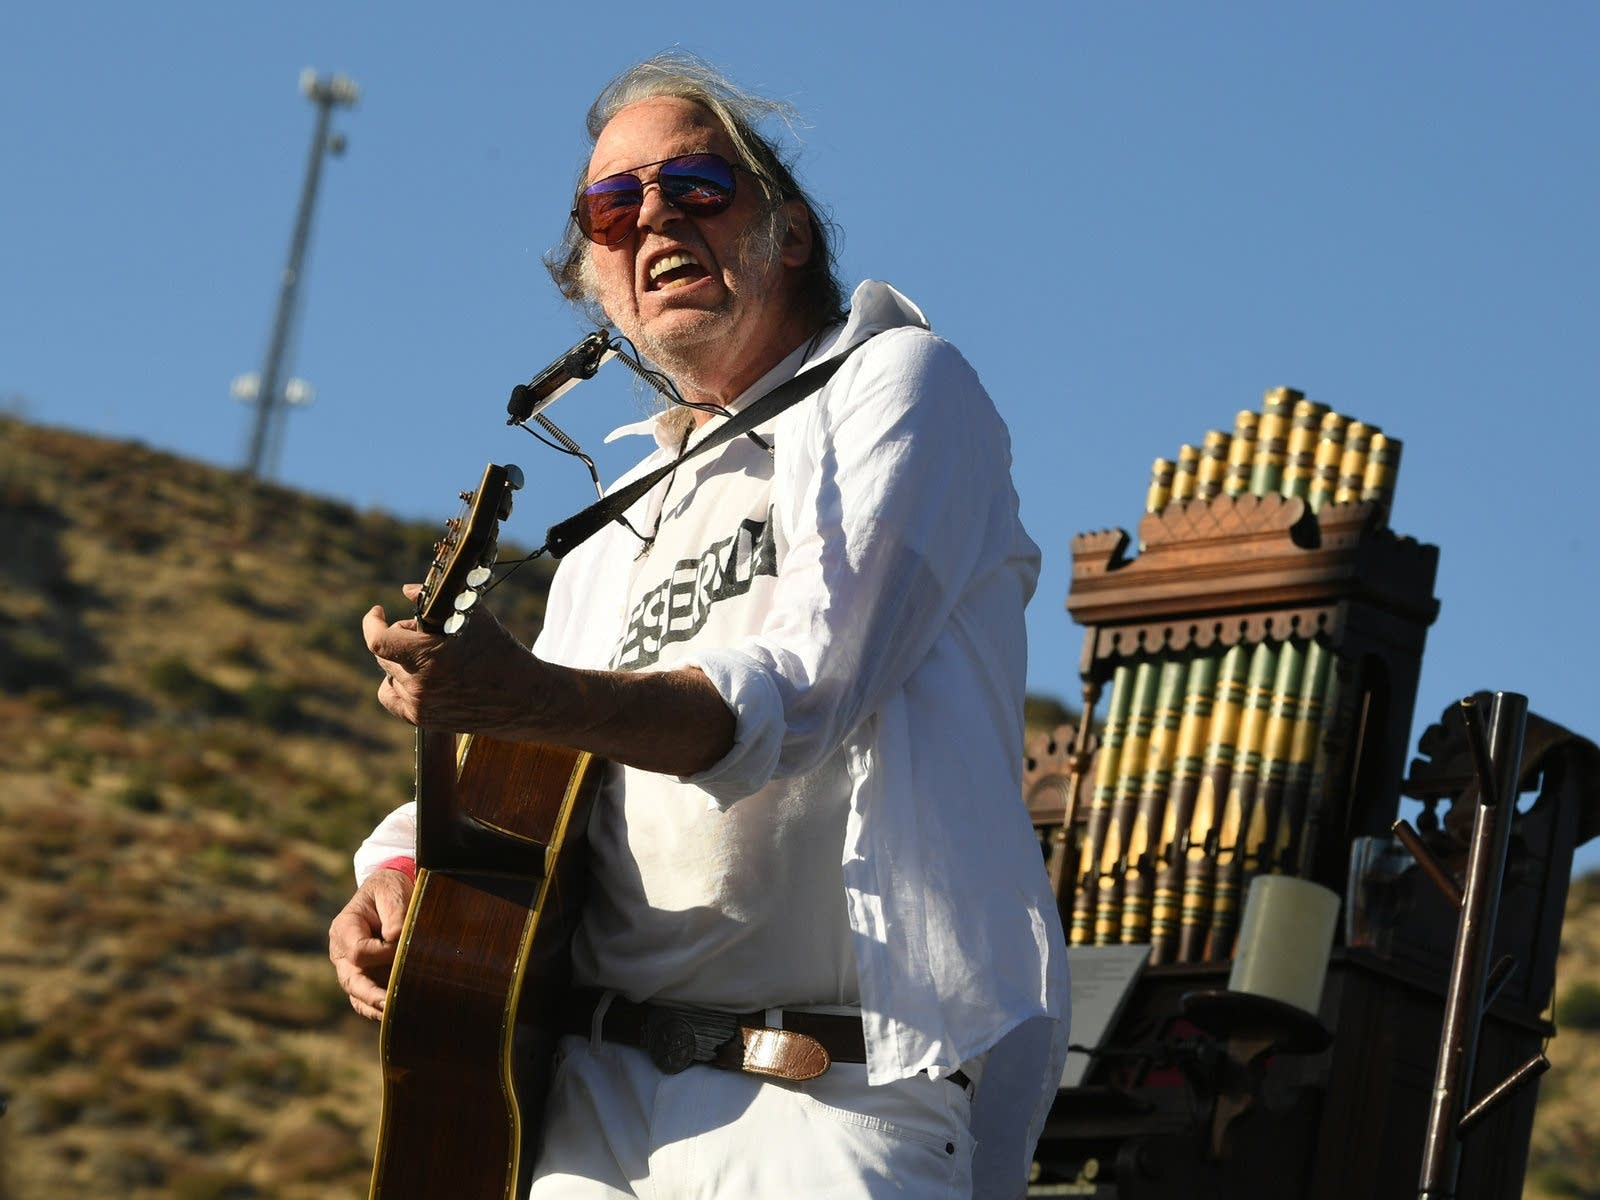 Neil Young performing in California.